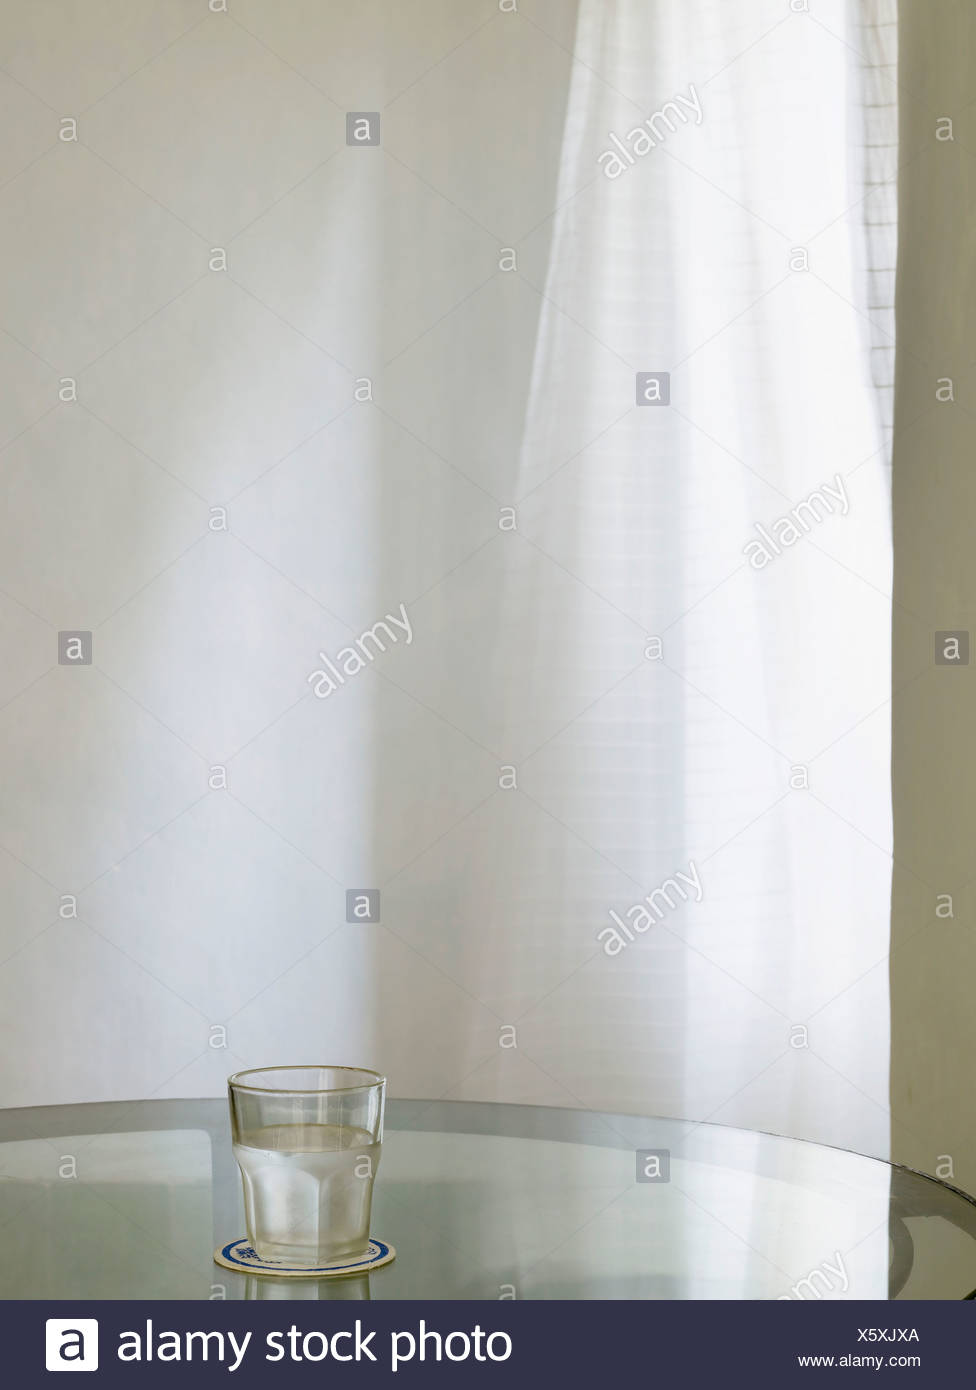 Drinking Glass Full of Water - Stock Image